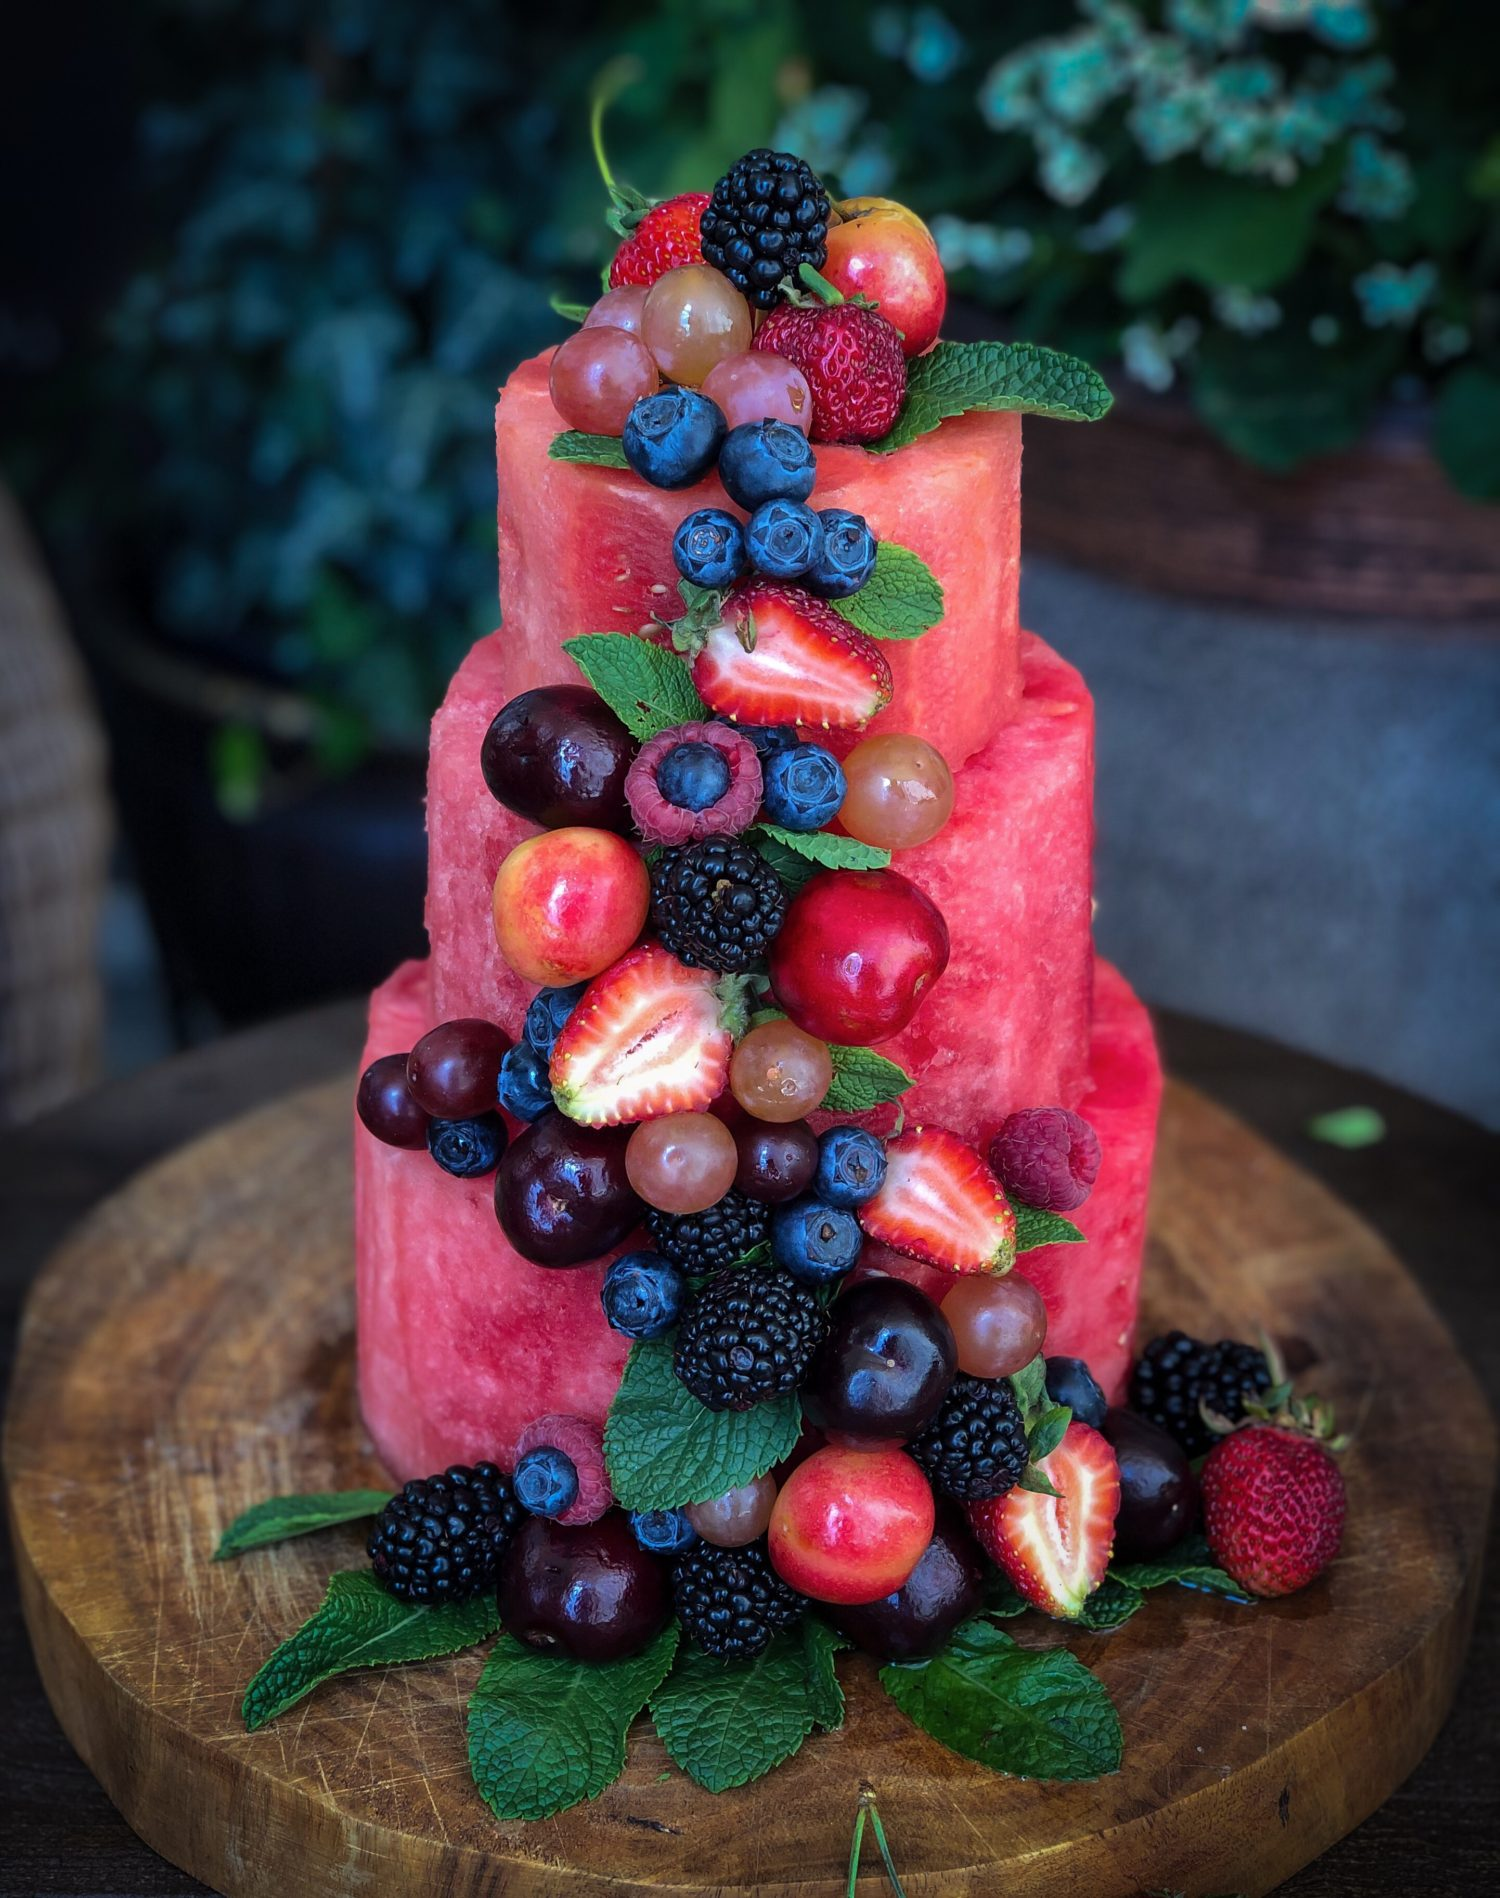 Watermelon Cake, berries and stone fruit